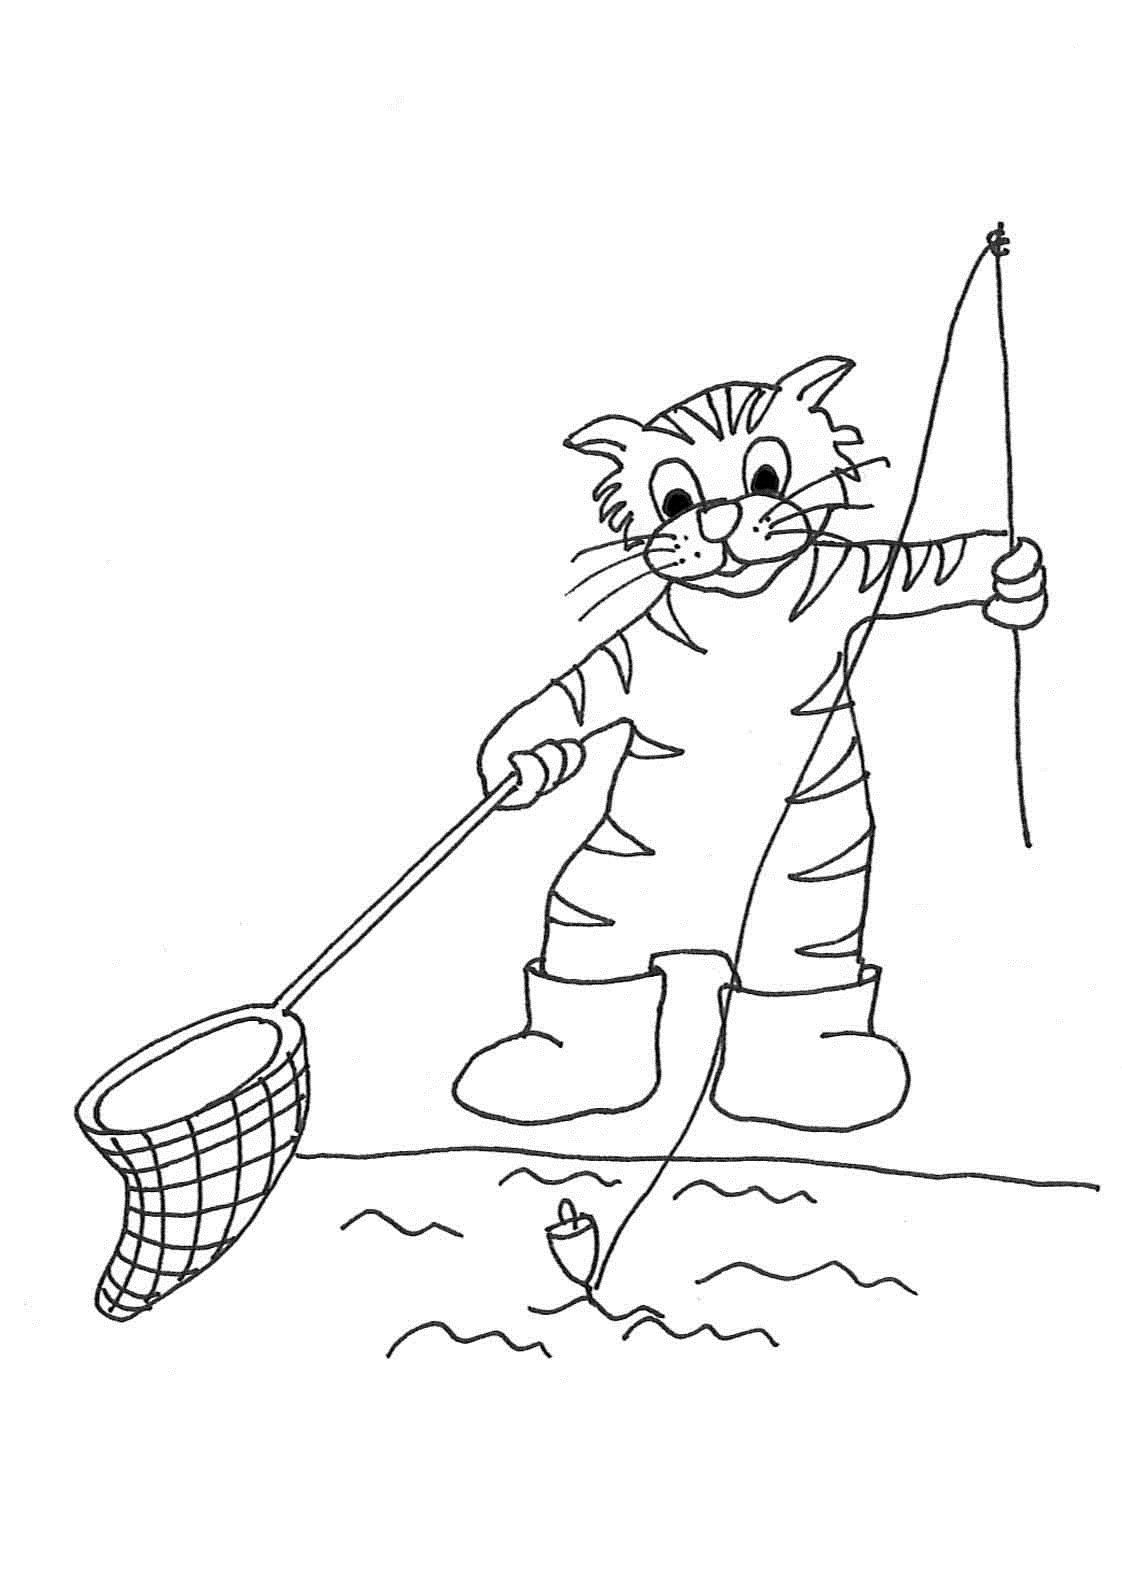 free coloring pictures of cats cats to color for kids cats kids coloring pages free pictures coloring of cats